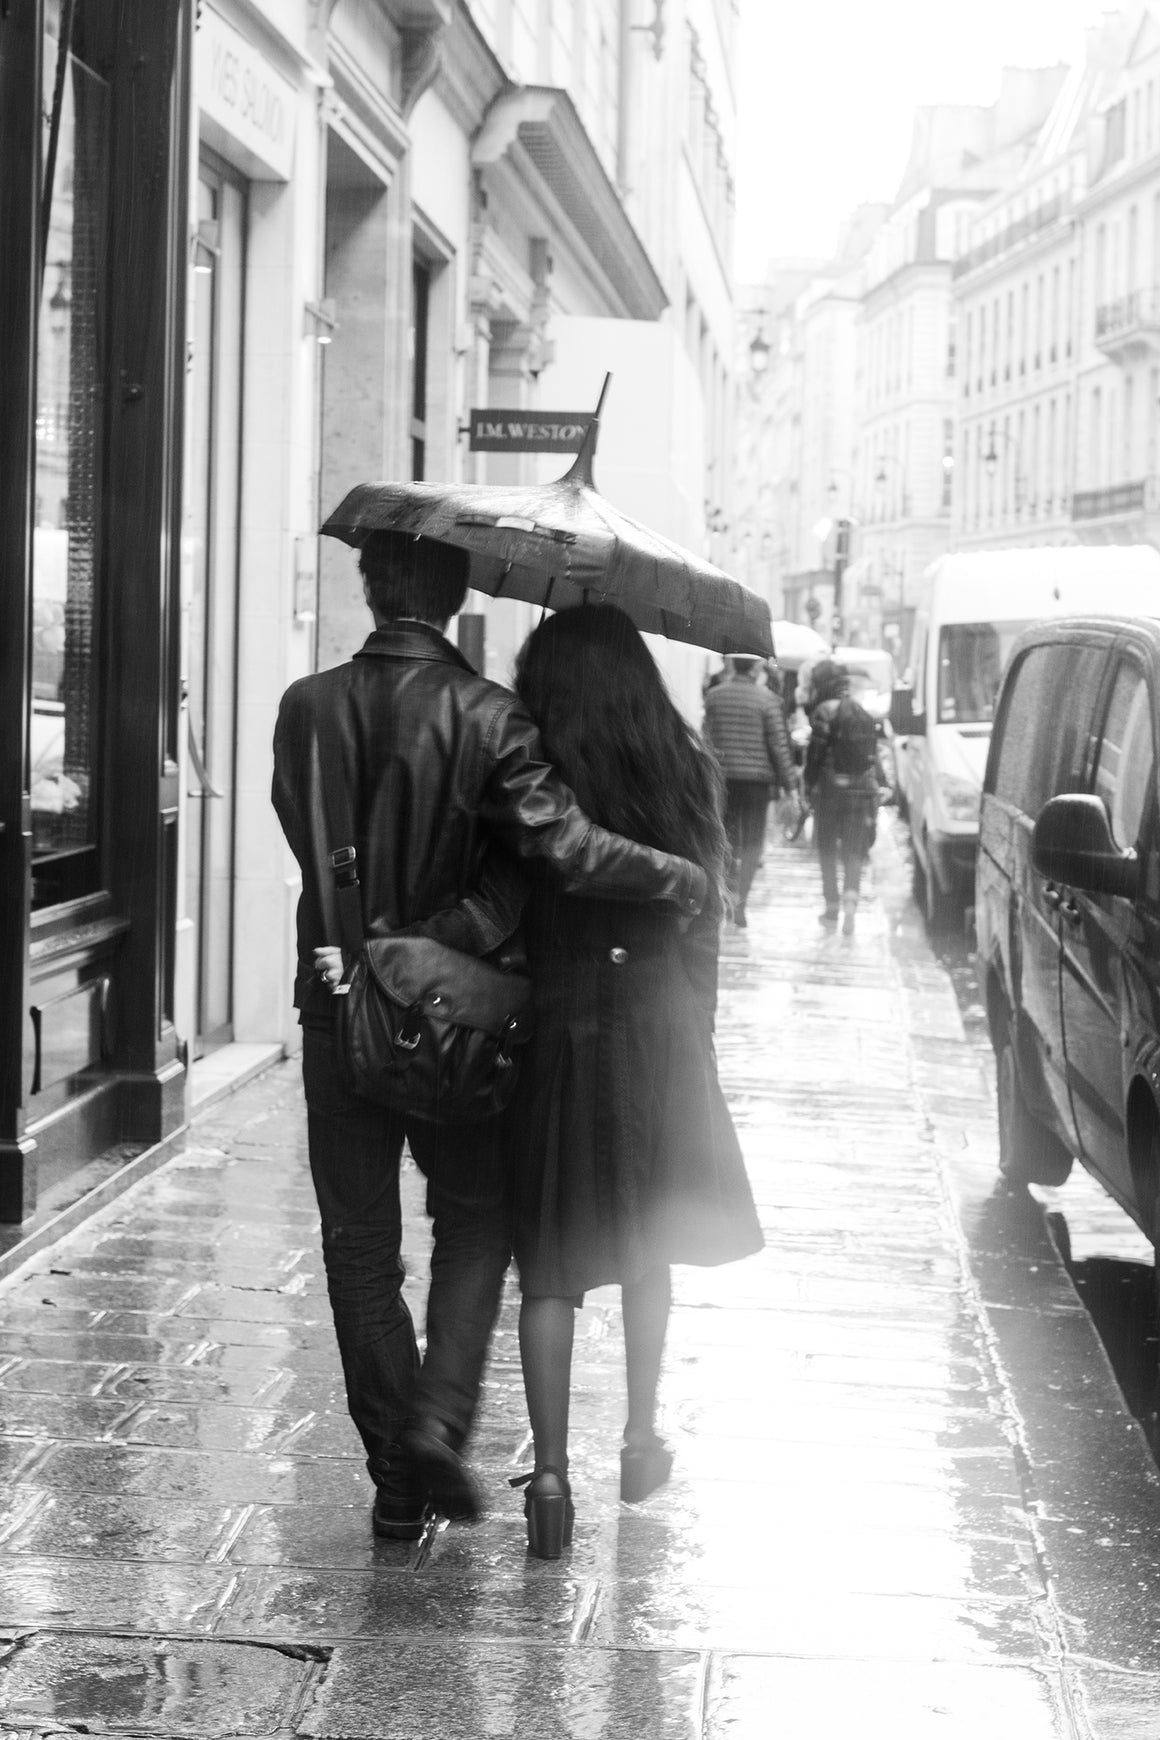 Paris Lovers in The Rain - Every Day Paris